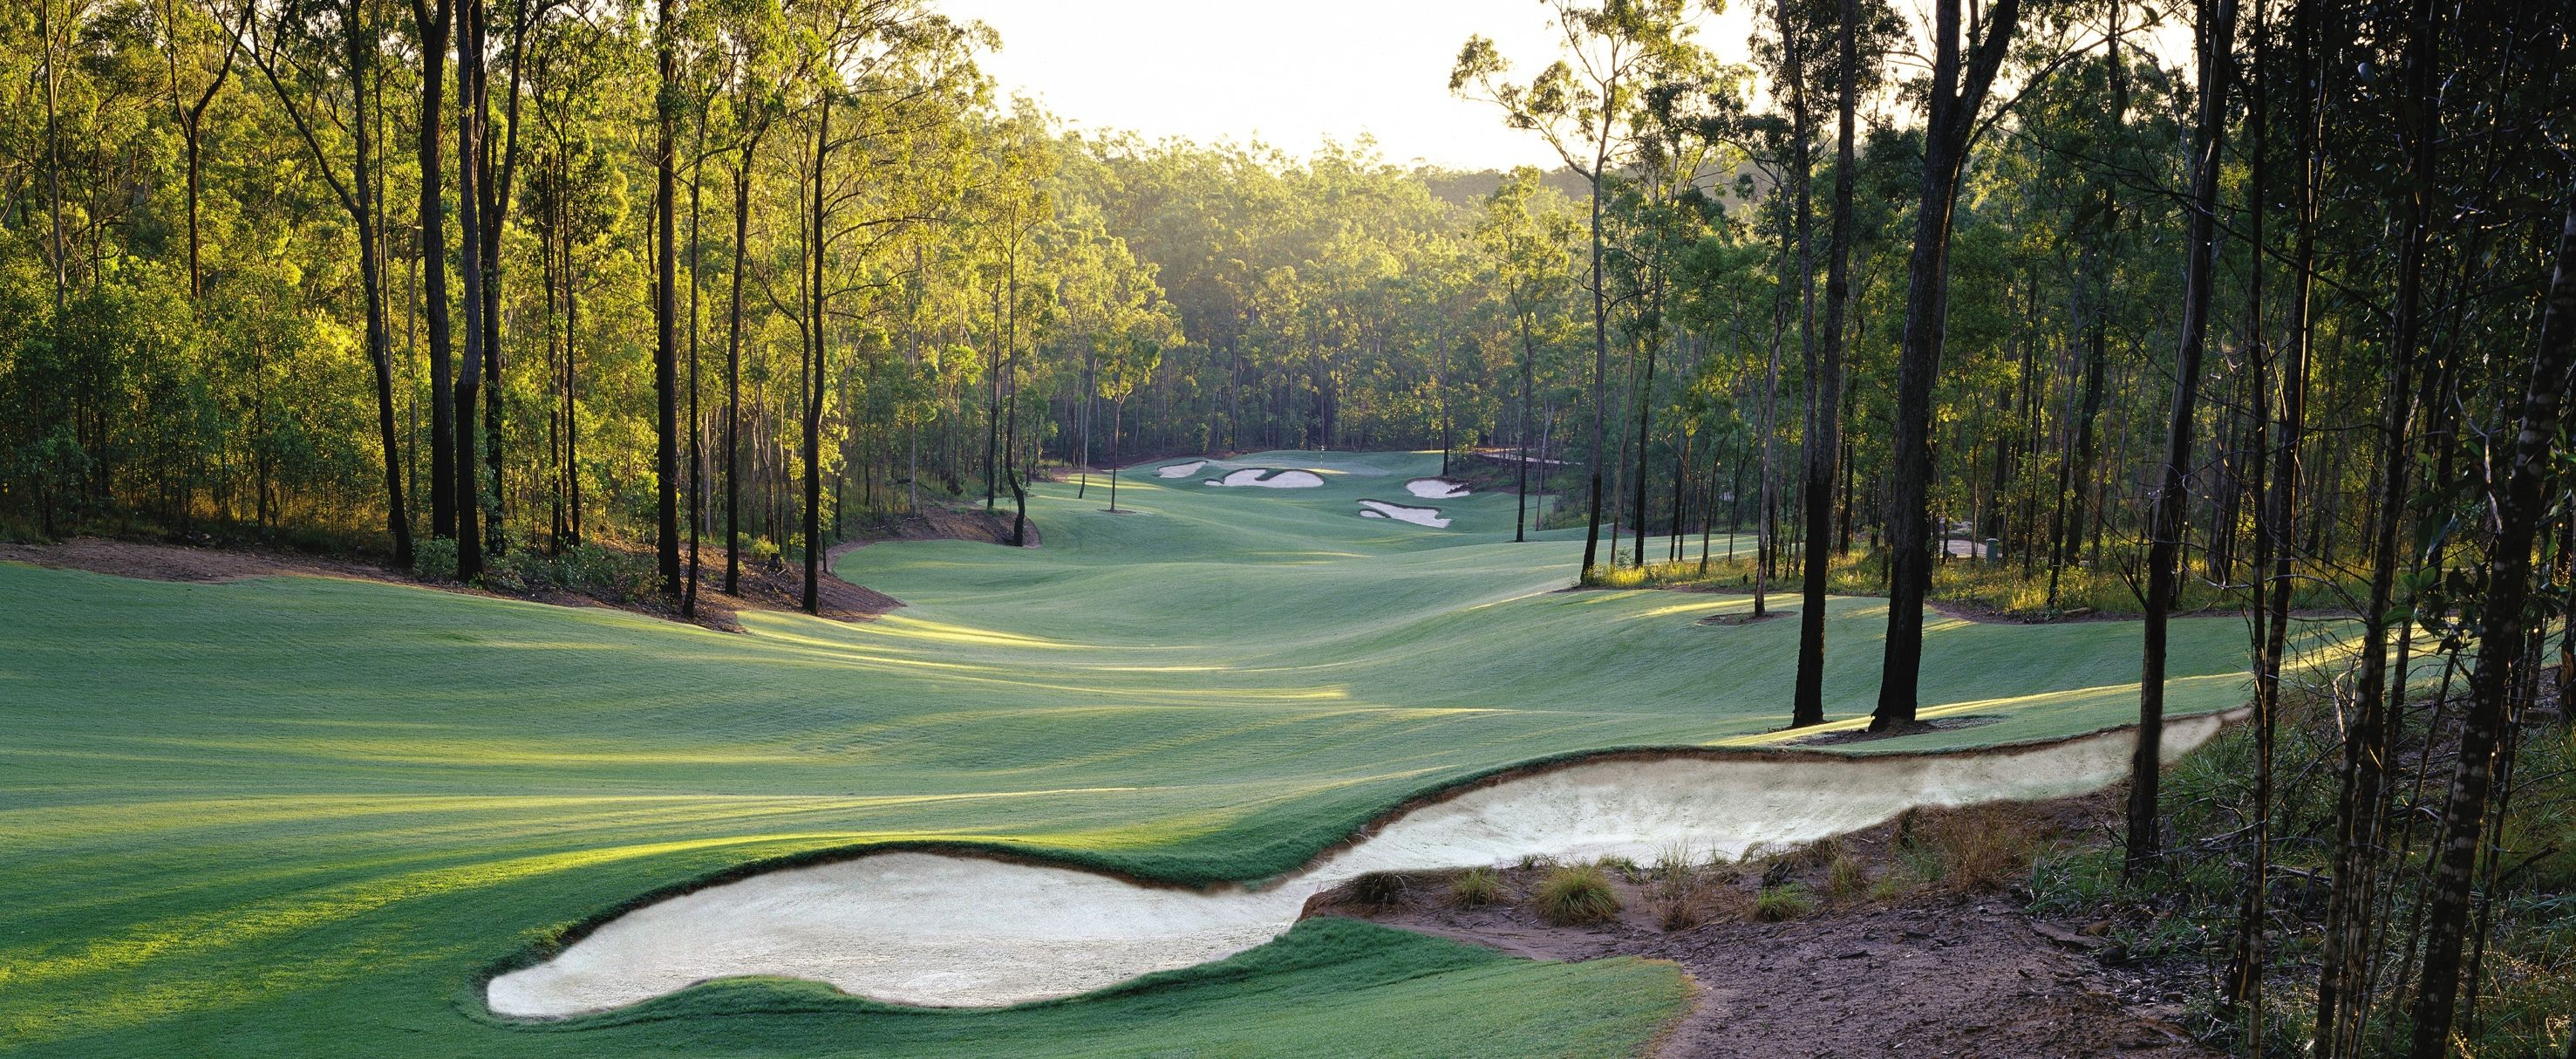 13th Hole At Brookwater Golf Country Club Designed By Greg Norman Golf Courses Golf Public Golf Courses